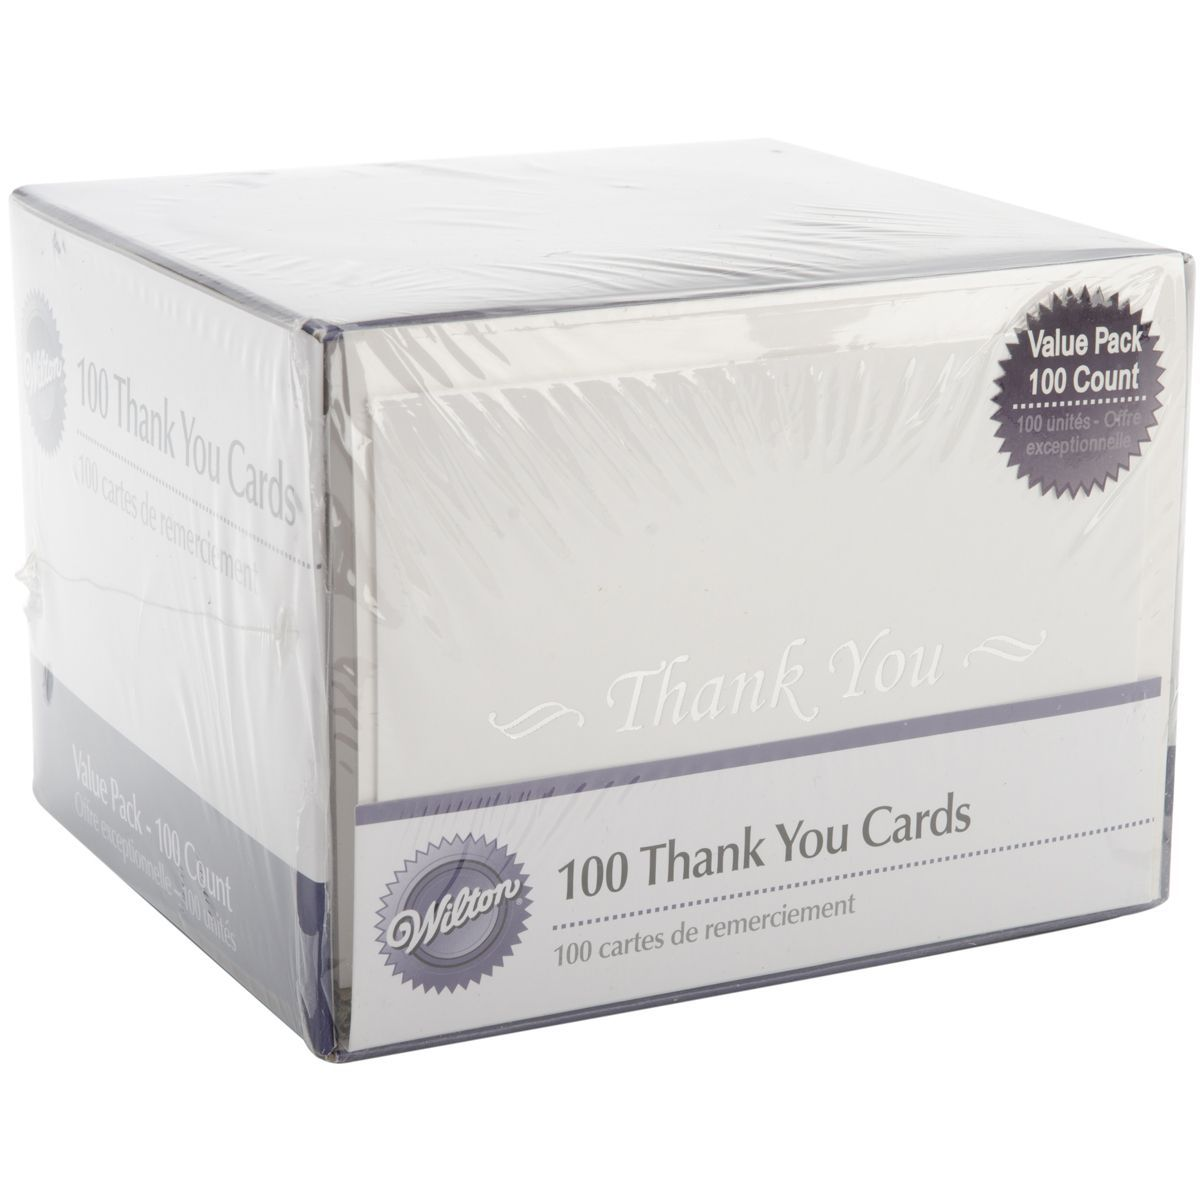 Wilton Thank You Cards Box Set Products Pinterest Box Sets And